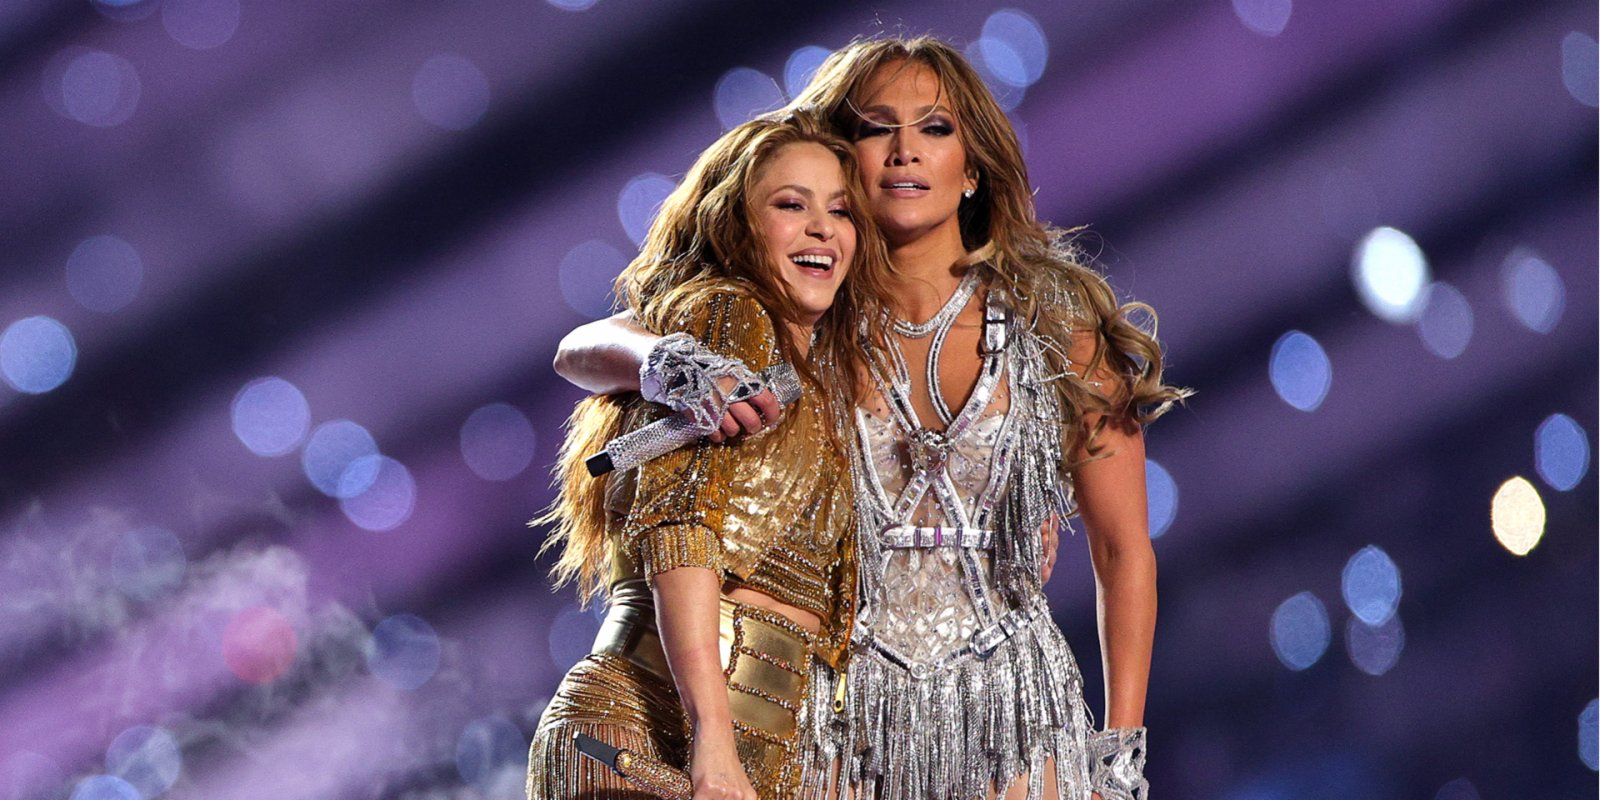 5 Best Super Bowl halftime shows in past decade